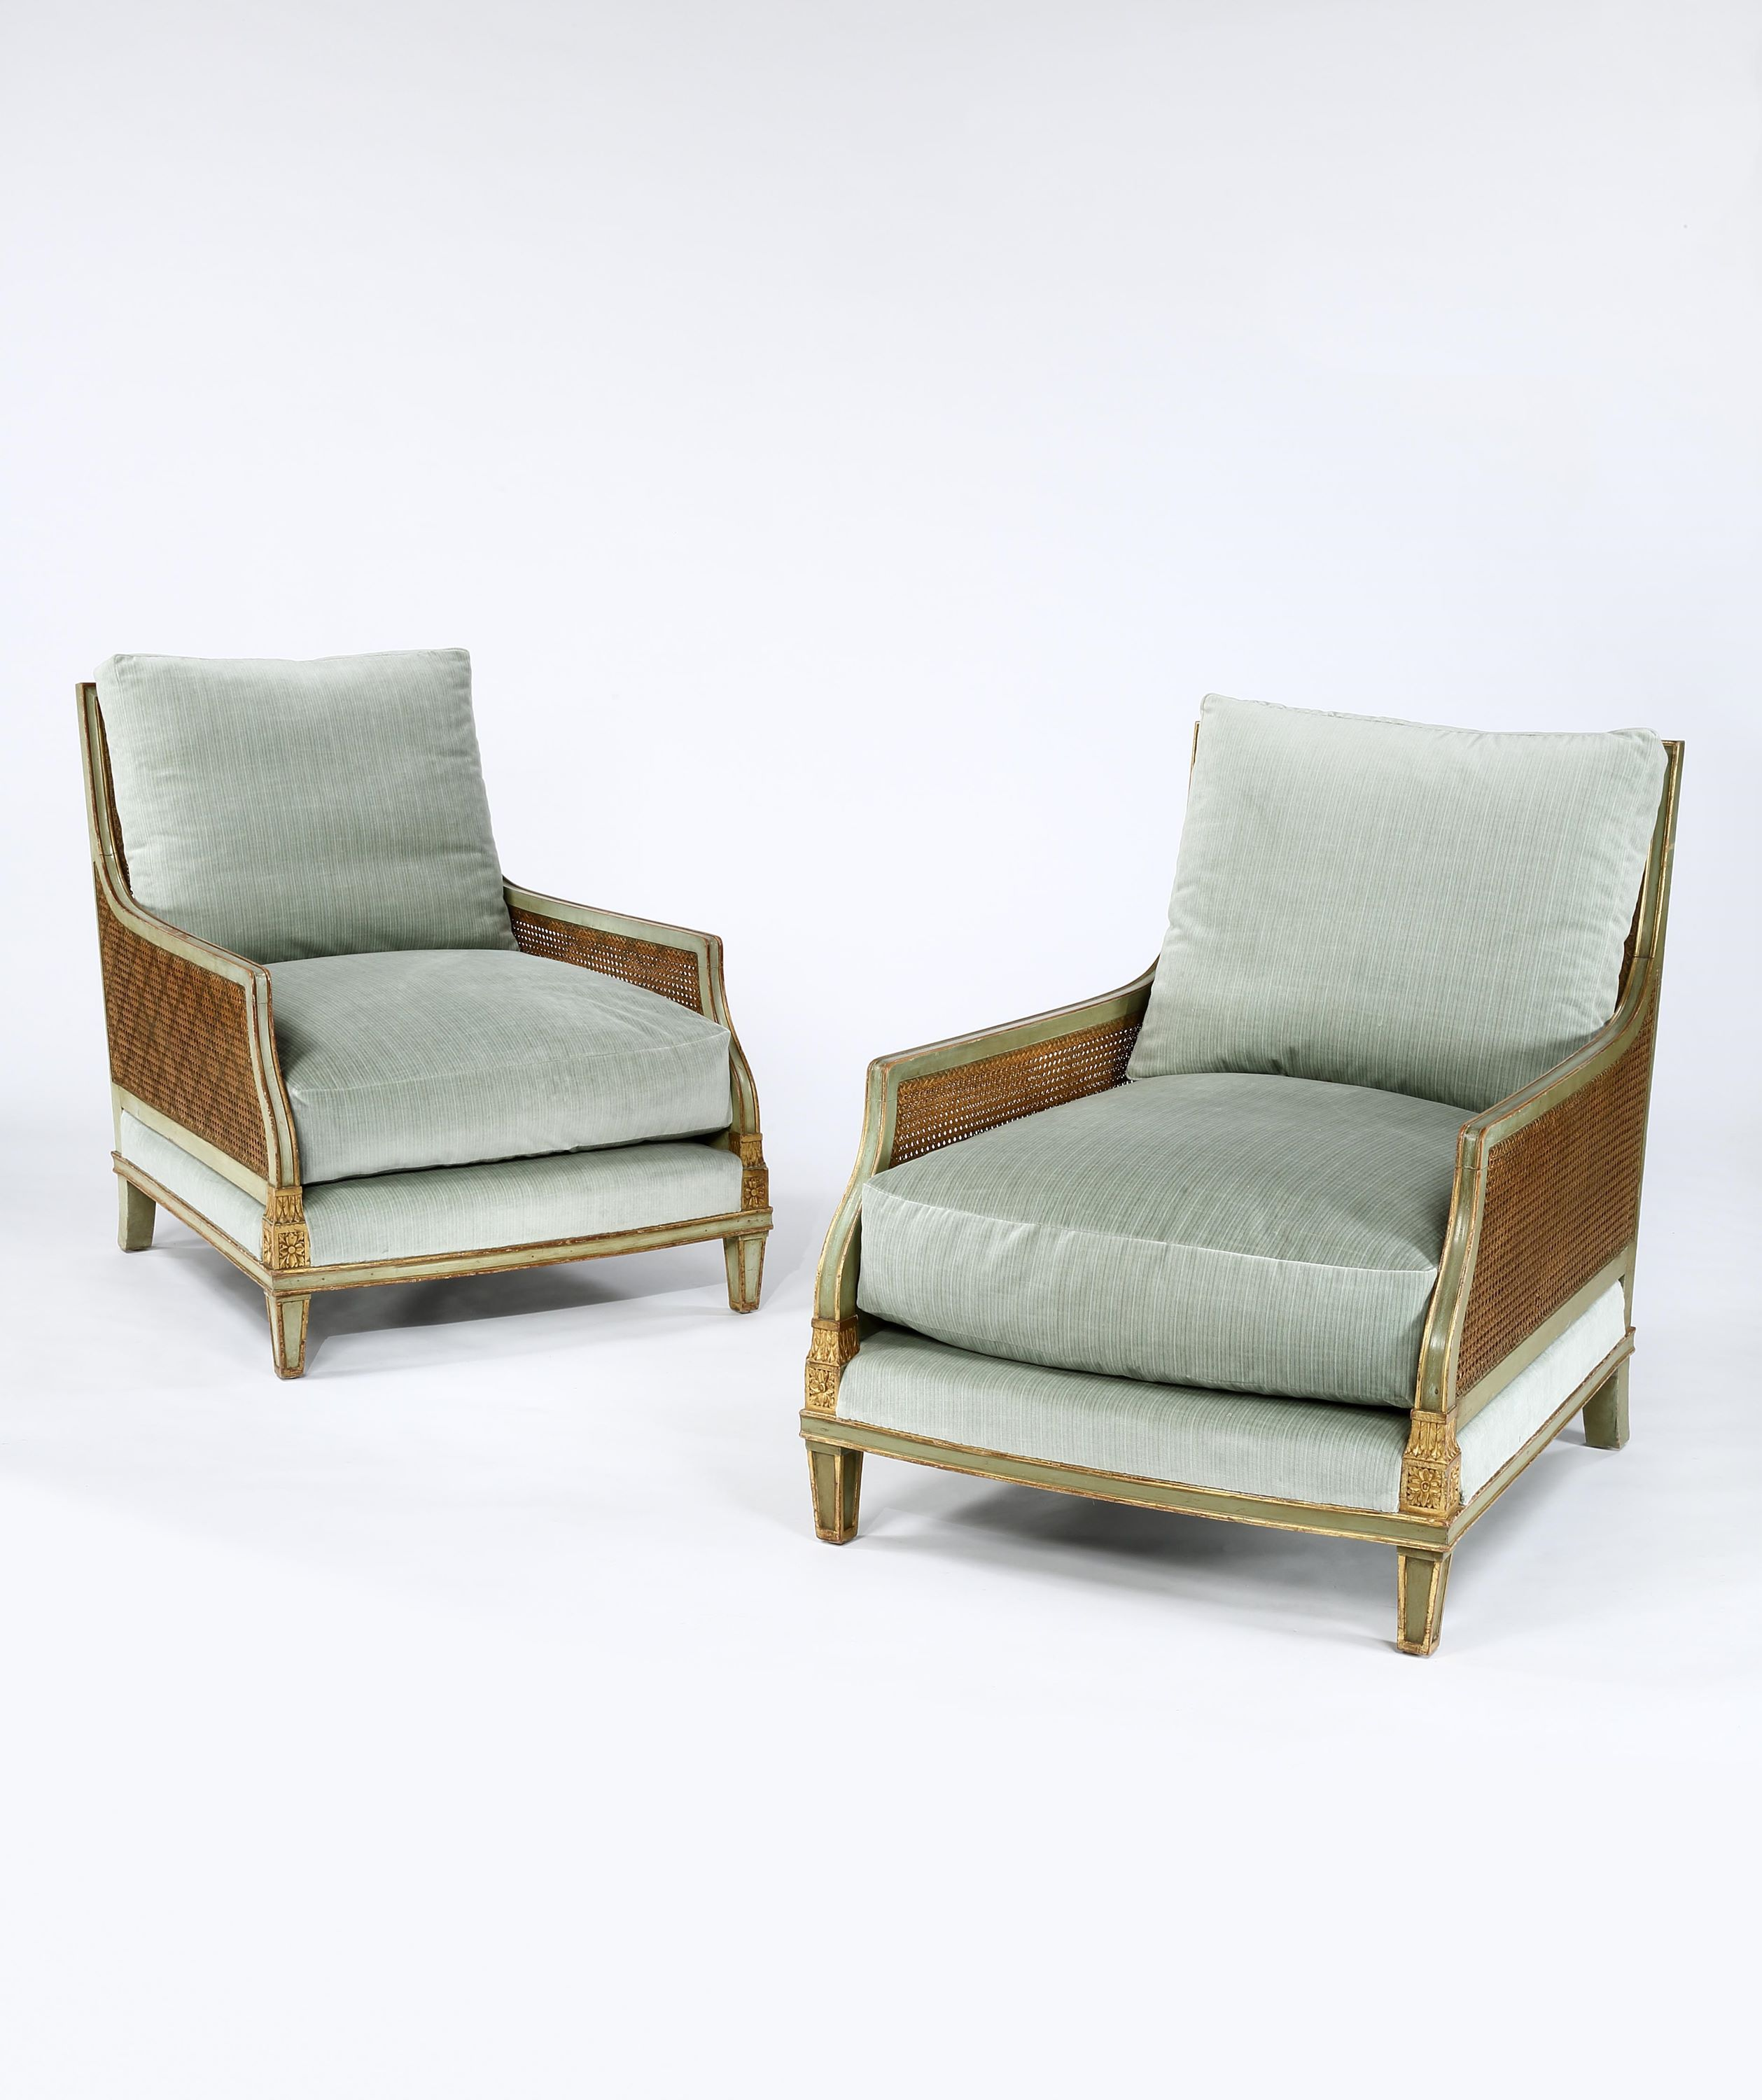 Image Result For Cool Bergere Cane. Occasional ChairsCanesArmchairs